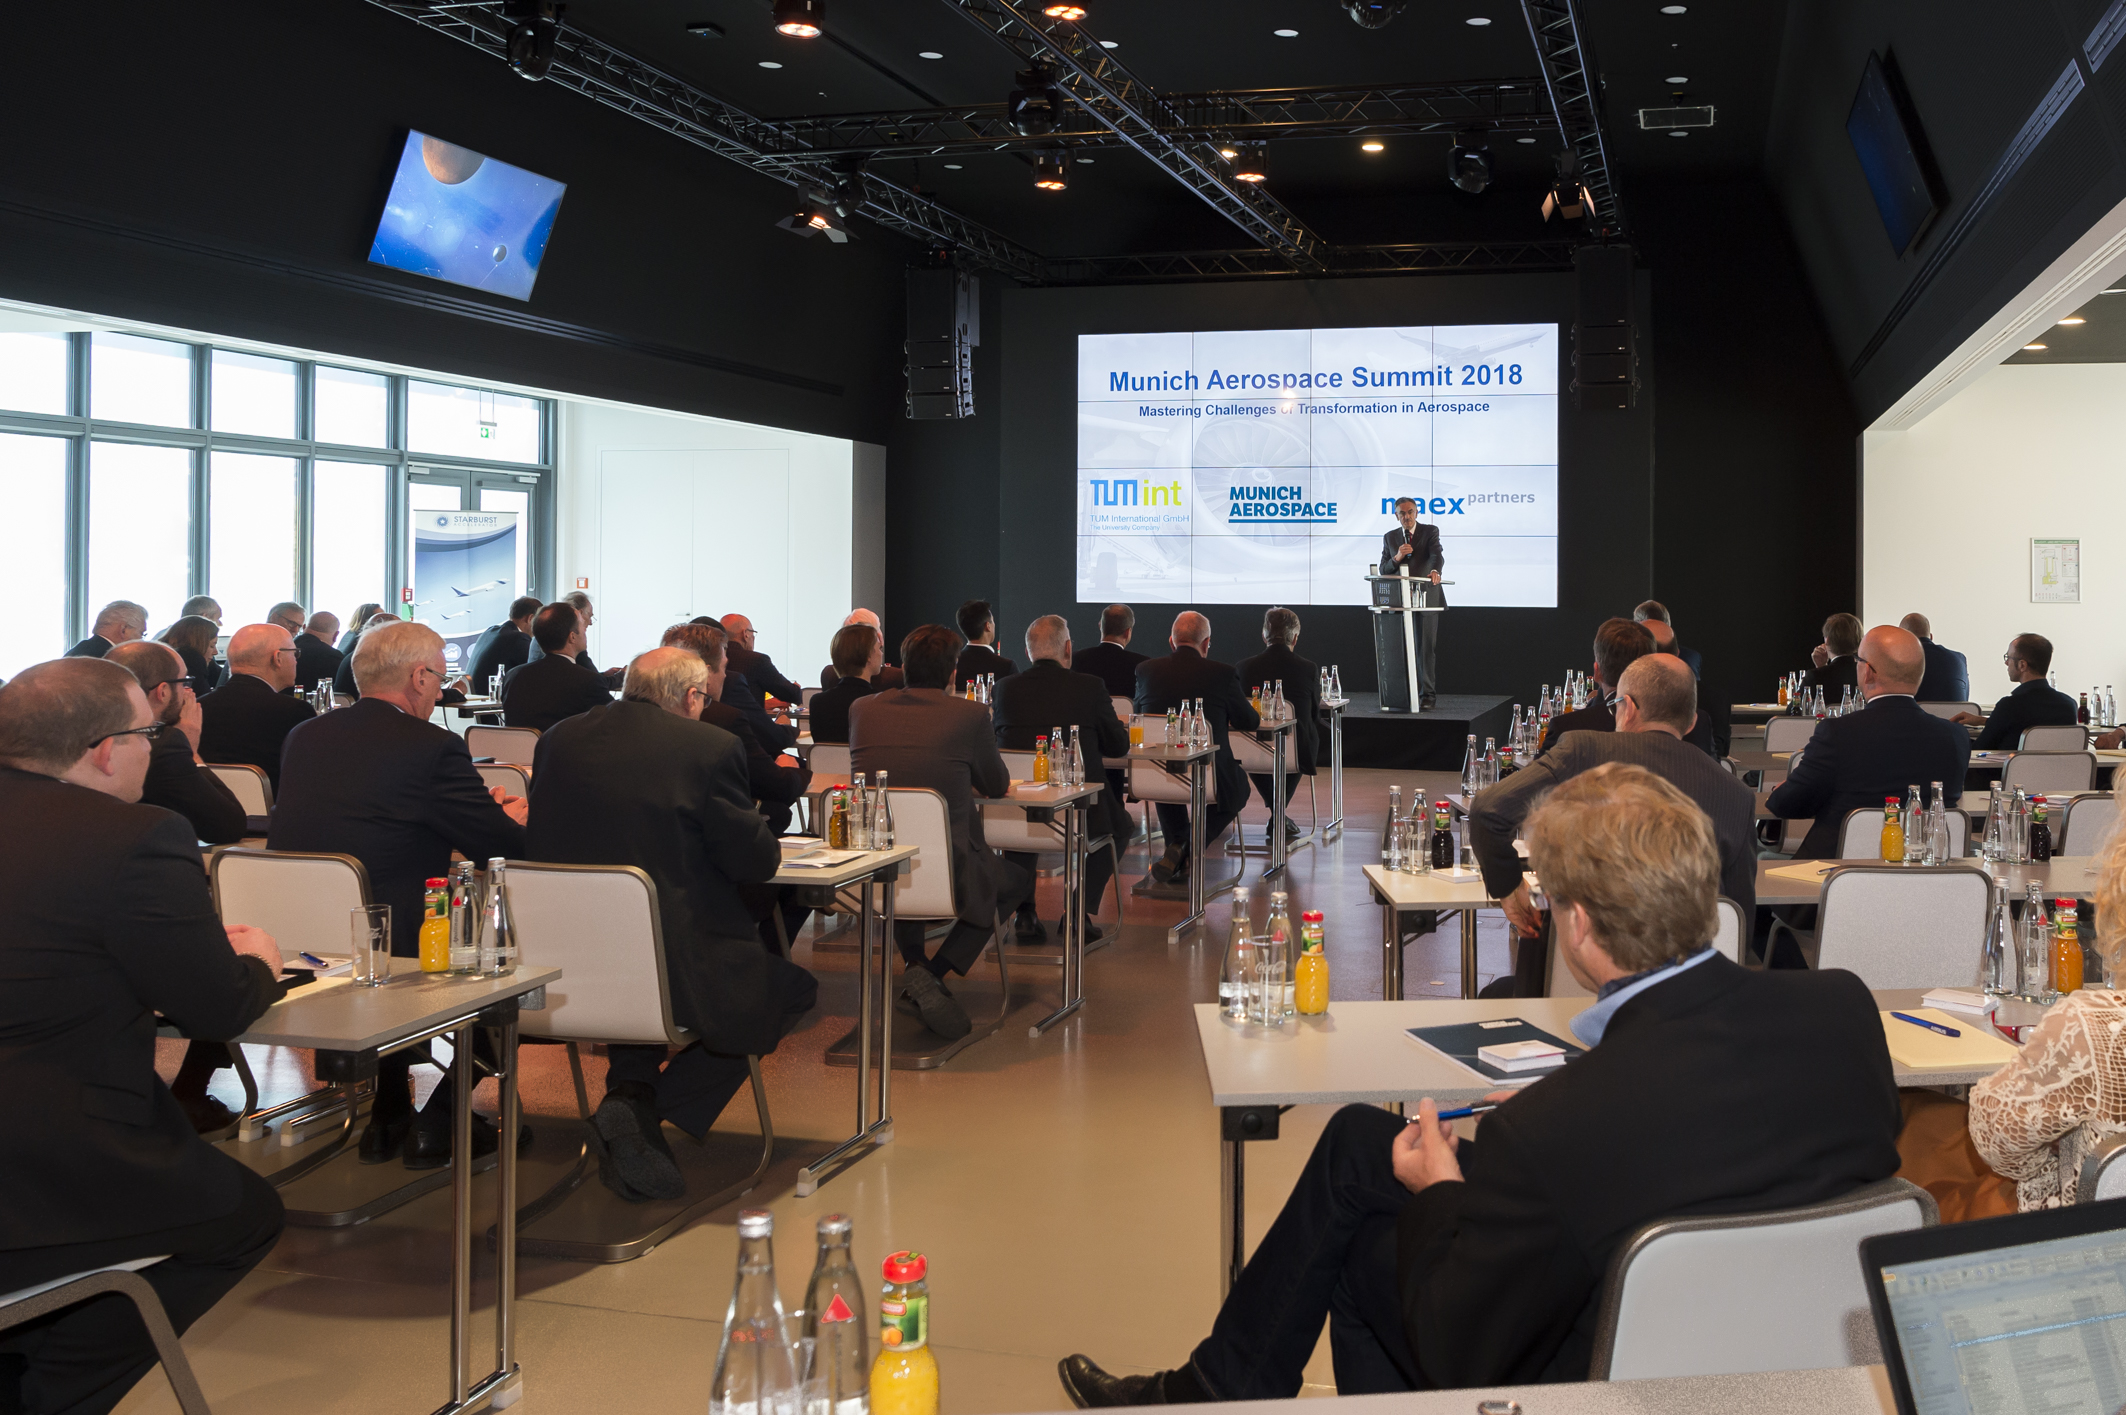 """Munich Aerospace Summit"" held for the first time at the Ludwig Bölkow Campus"